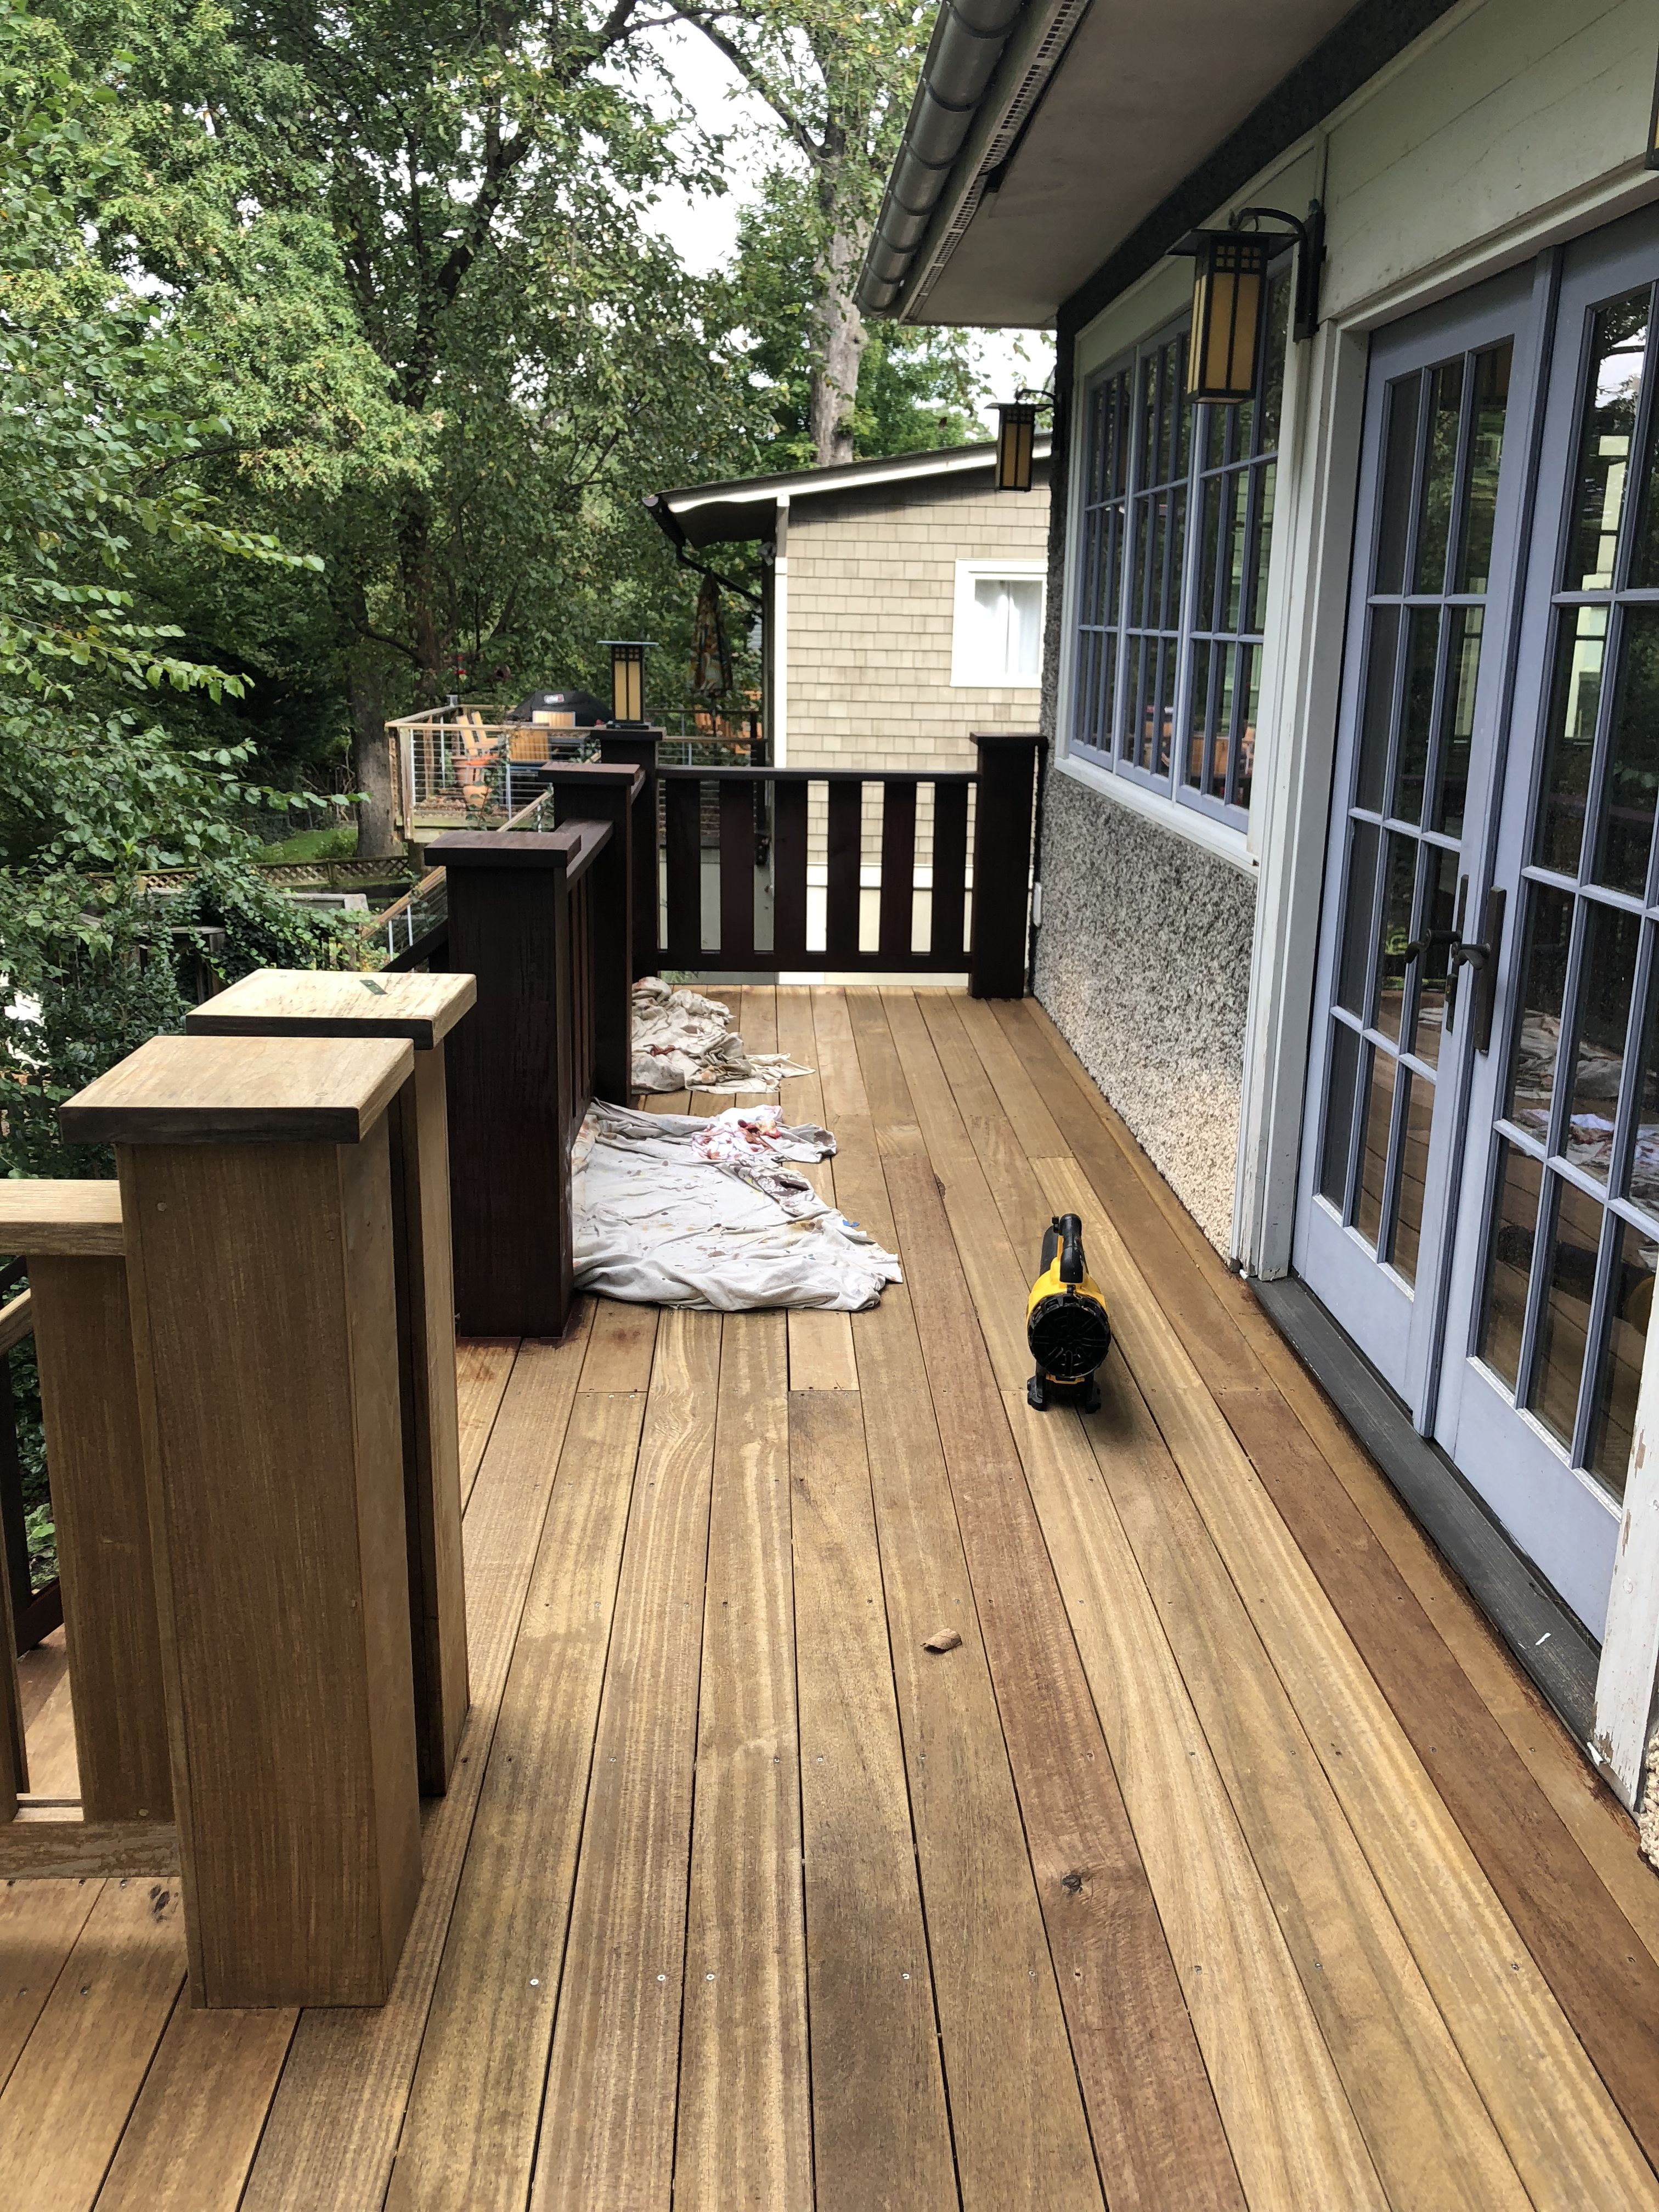 Remove Old Stain Pressure Washing And Staining Outdoor Decor